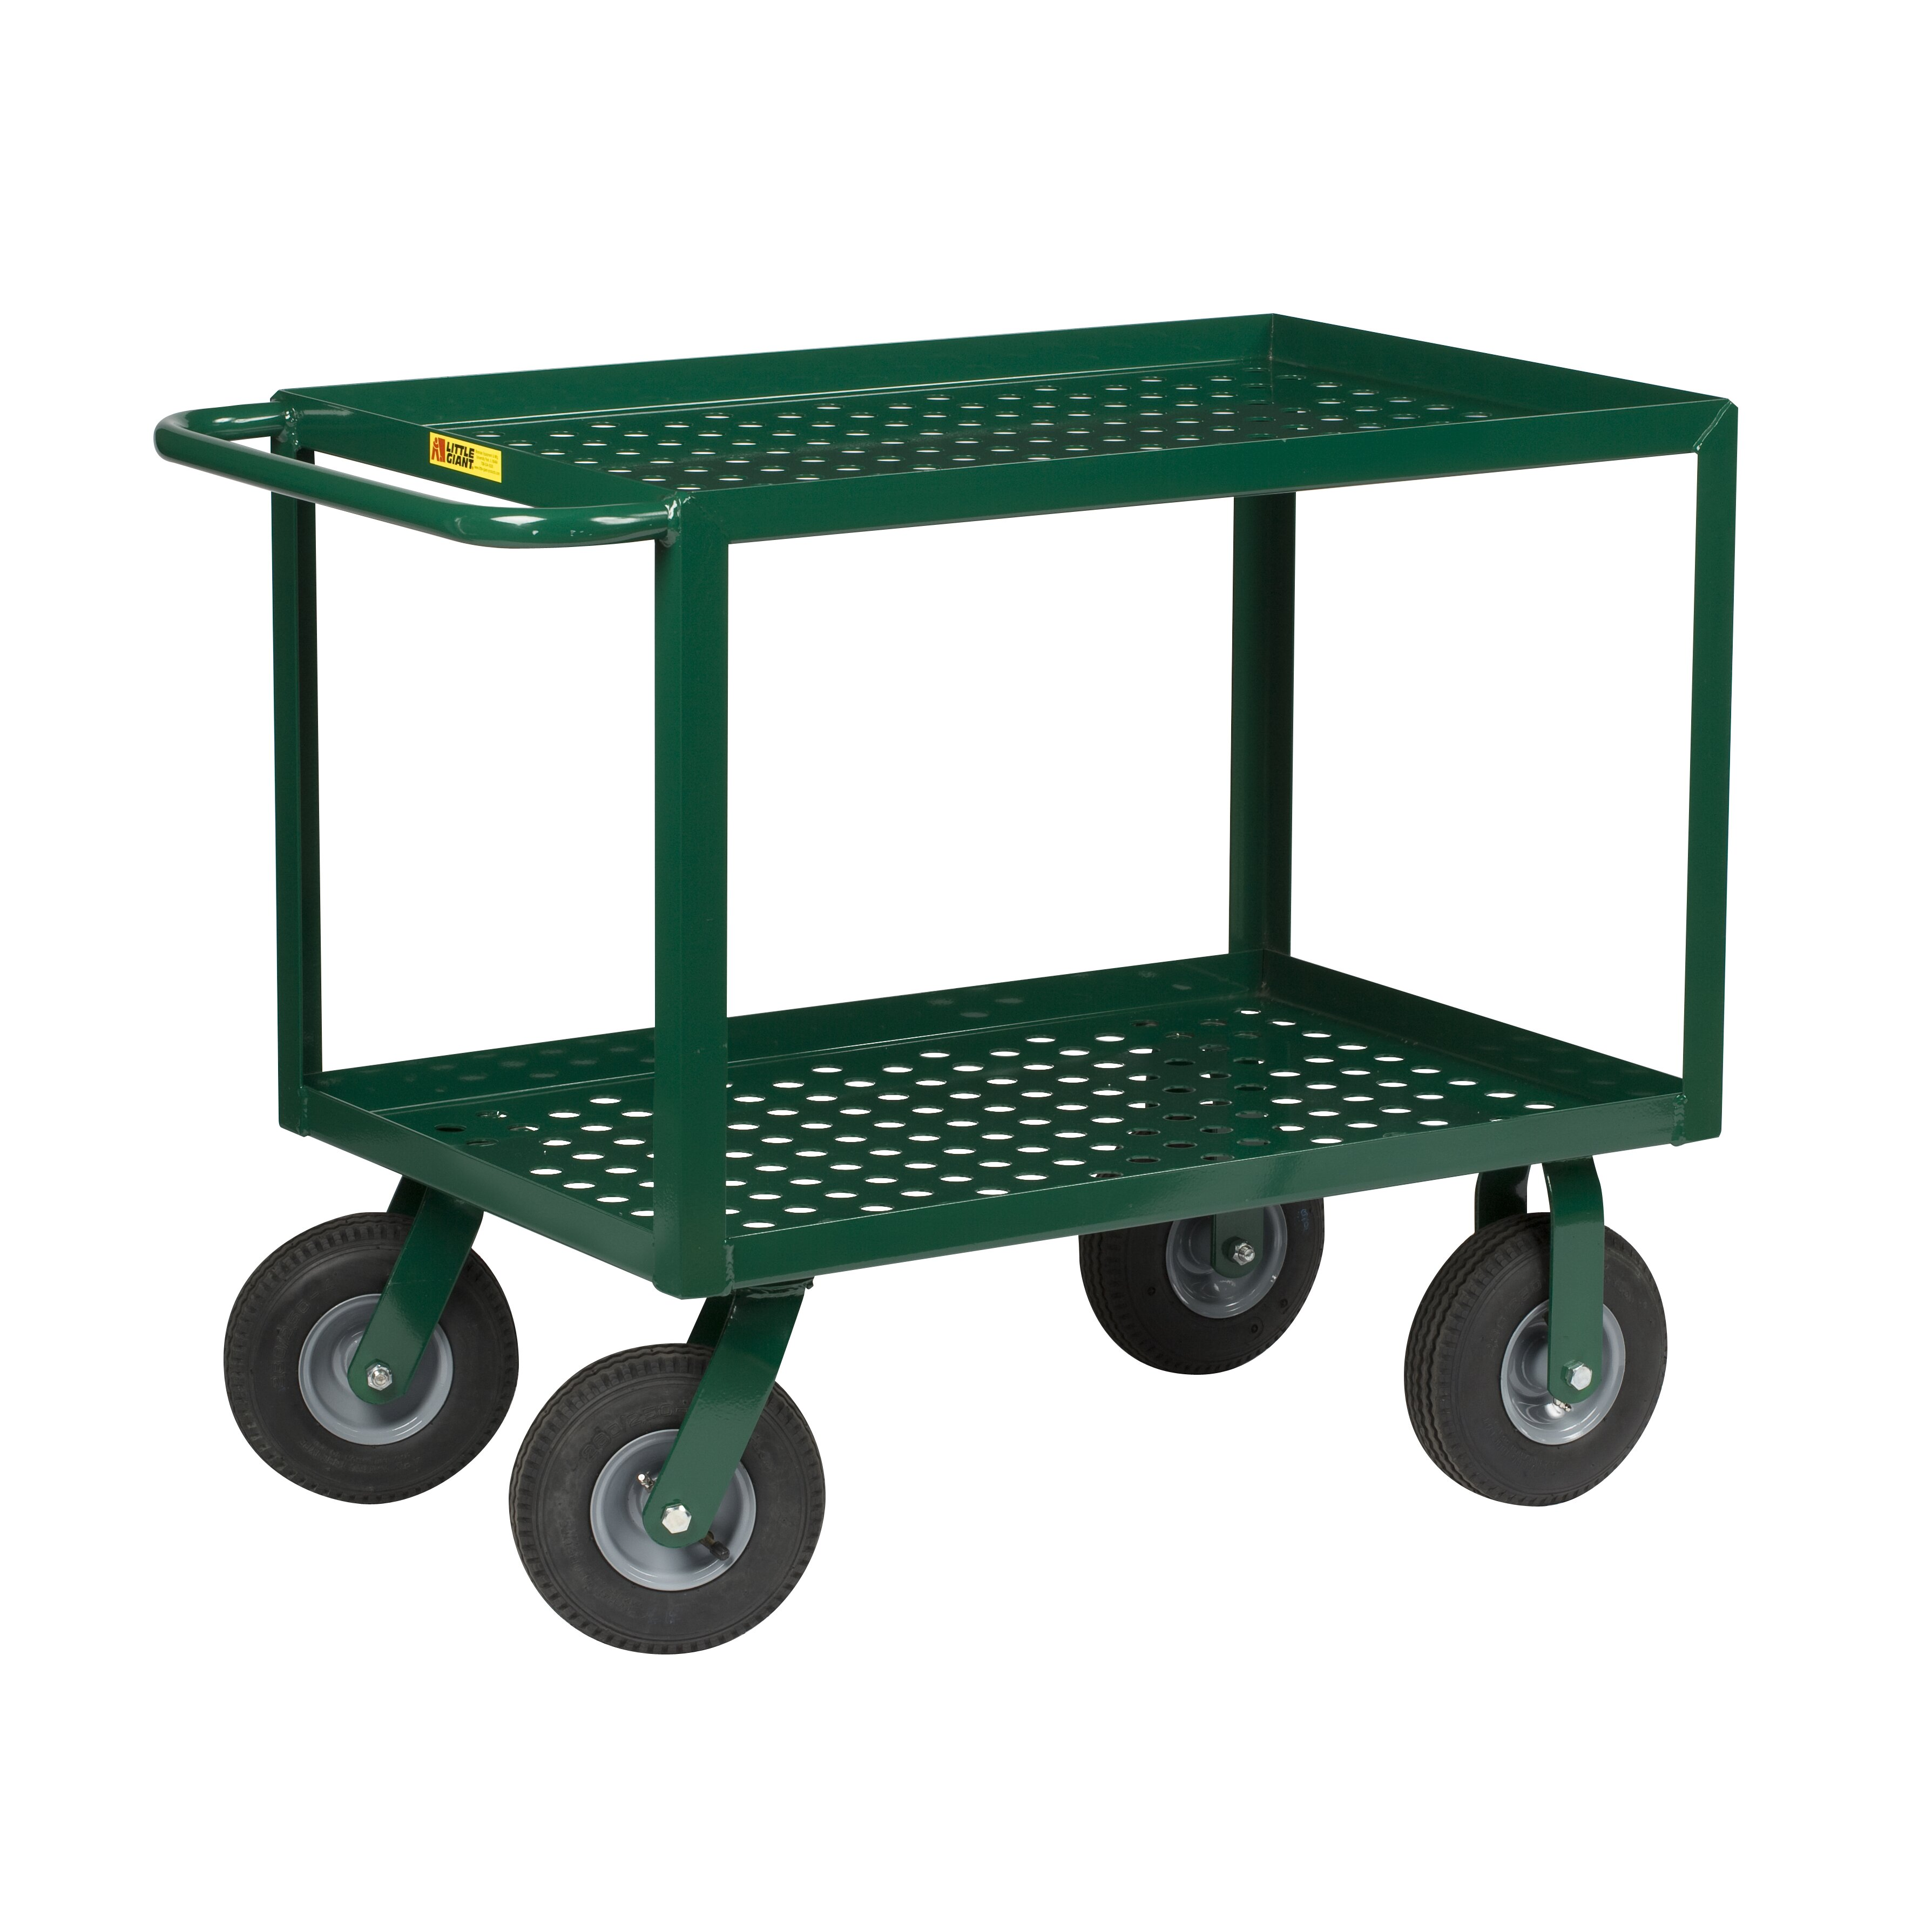 Little Giant Usa 41 5 Quot Perforated Deck Utility Cart With